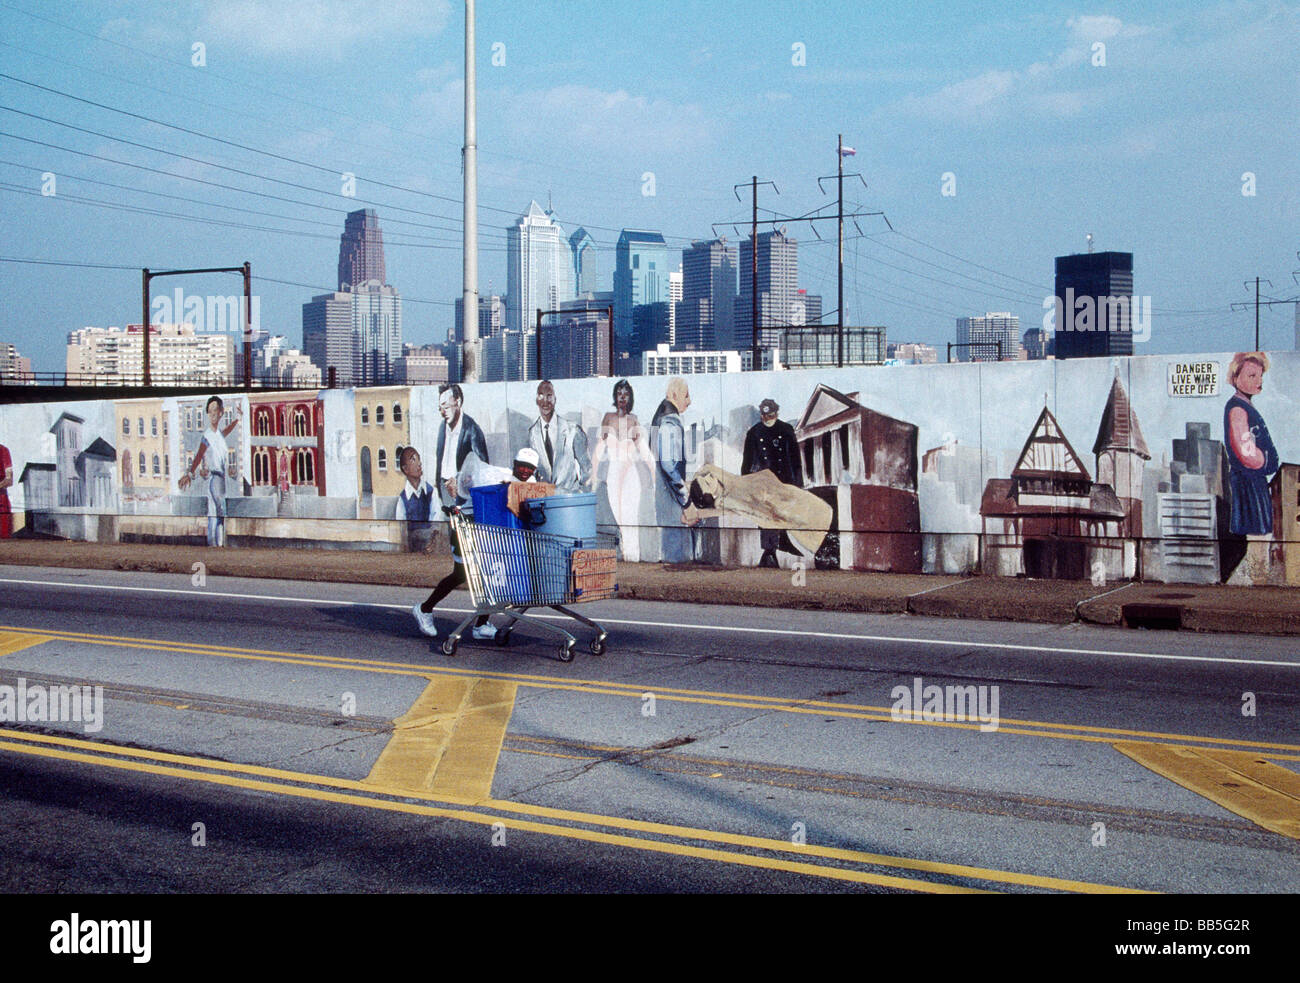 Philly Photo Stock Photos & Philly Photo Stock Images - Alamy